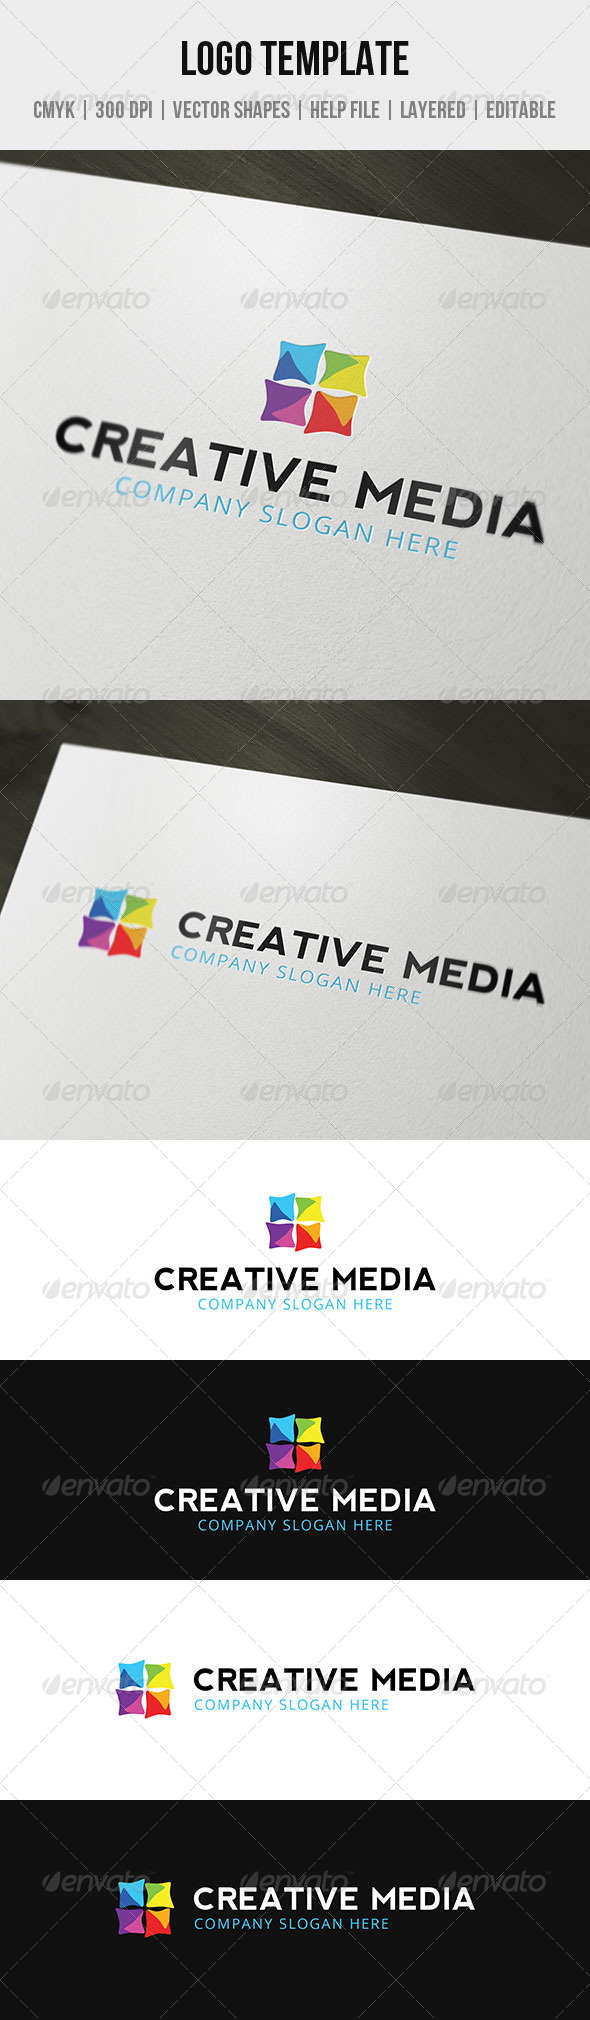 GraphicRiver Creative Media Logo Template 4707494